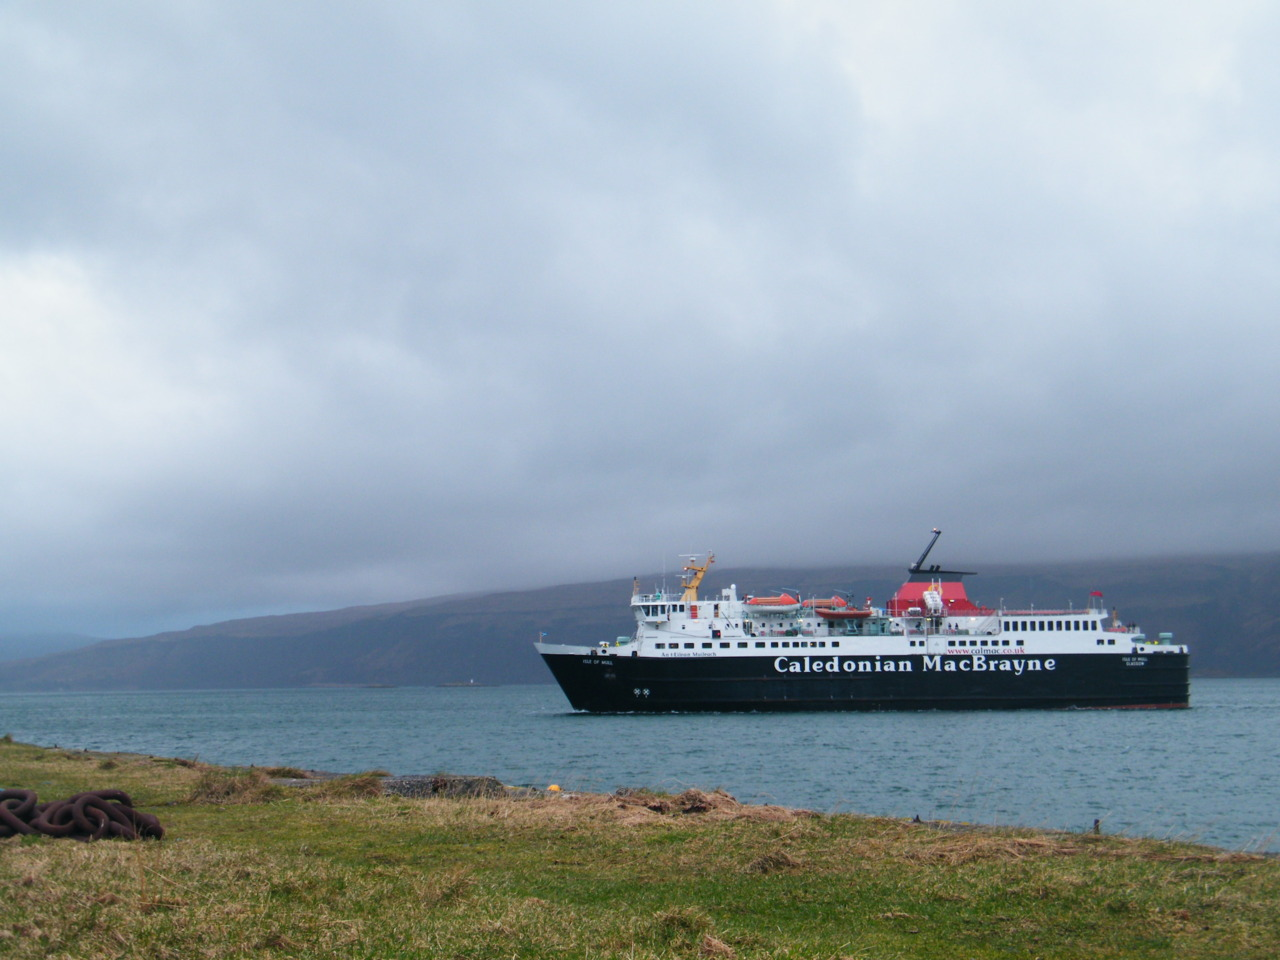 The 'Isle of Mull' approaching Craignure